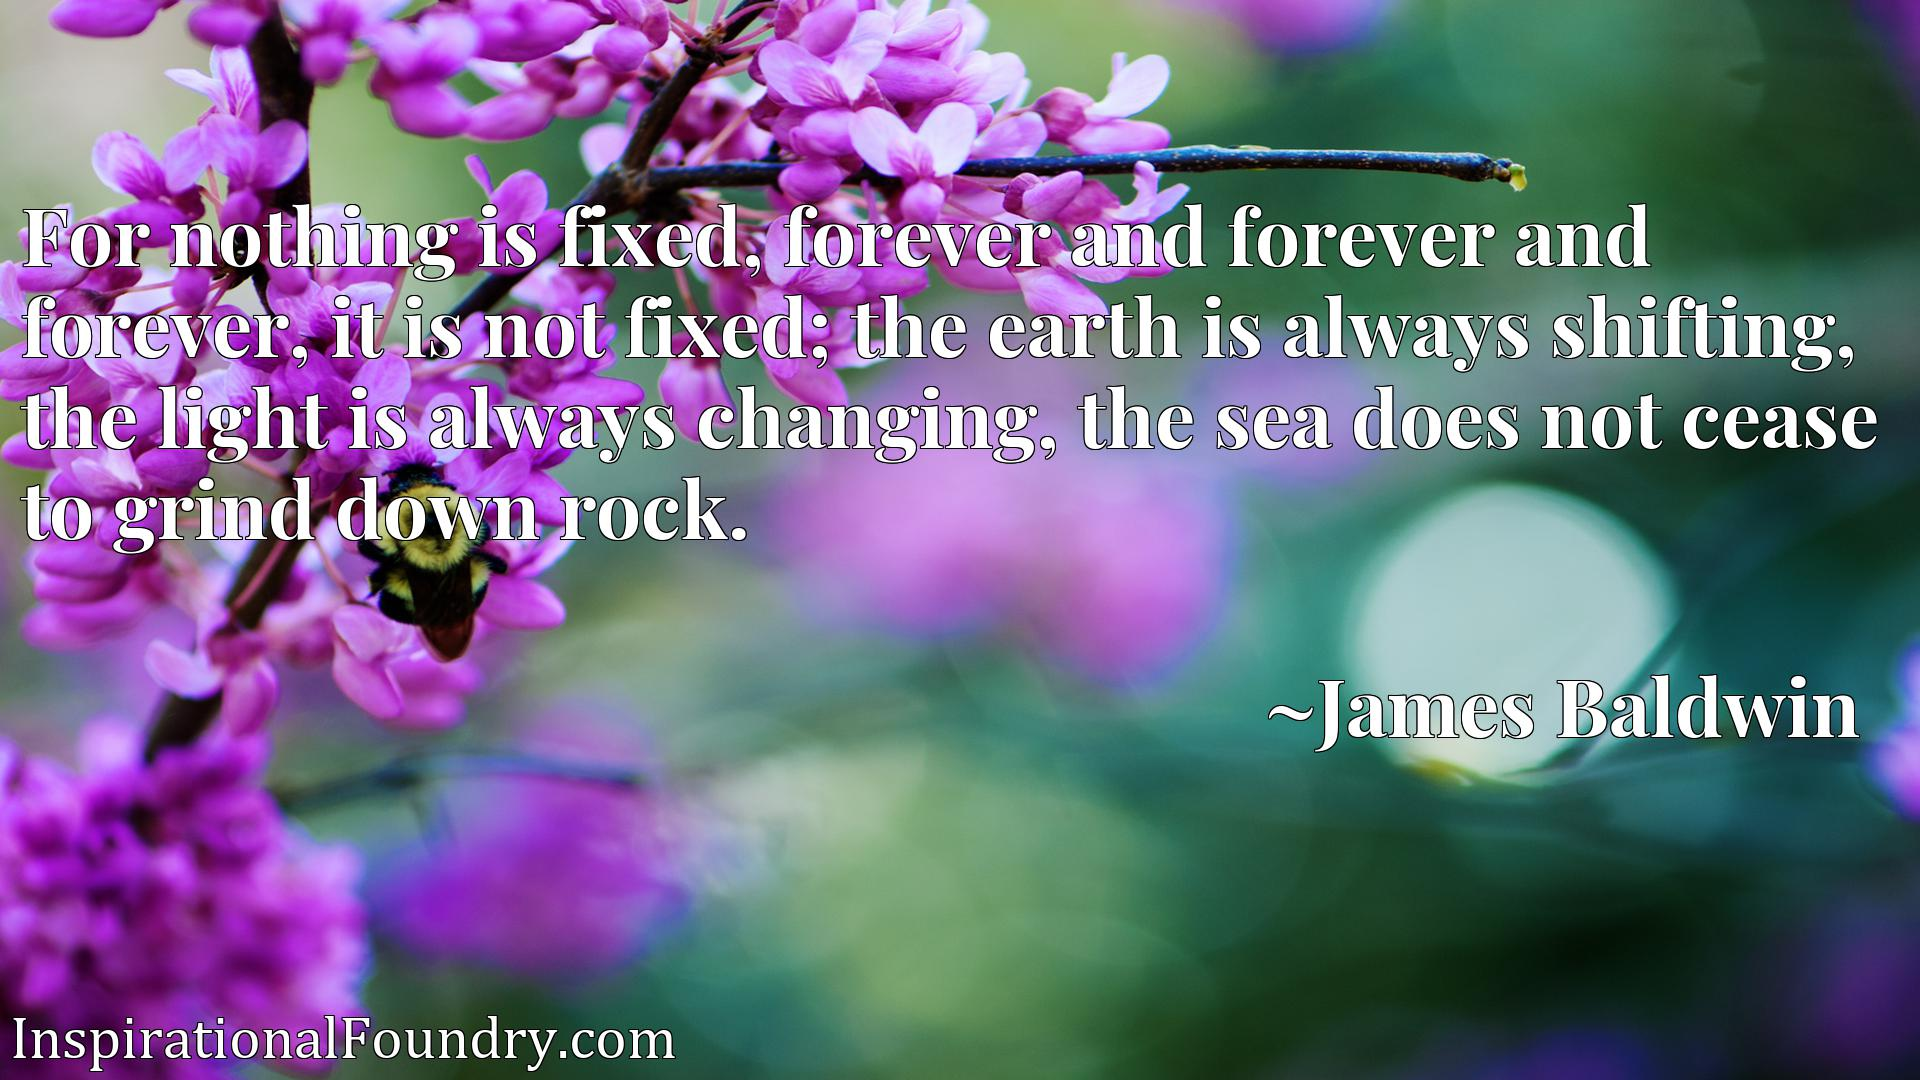 For nothing is fixed, forever and forever and forever, it is not fixed; the earth is always shifting, the light is always changing, the sea does not cease to grind down rock.